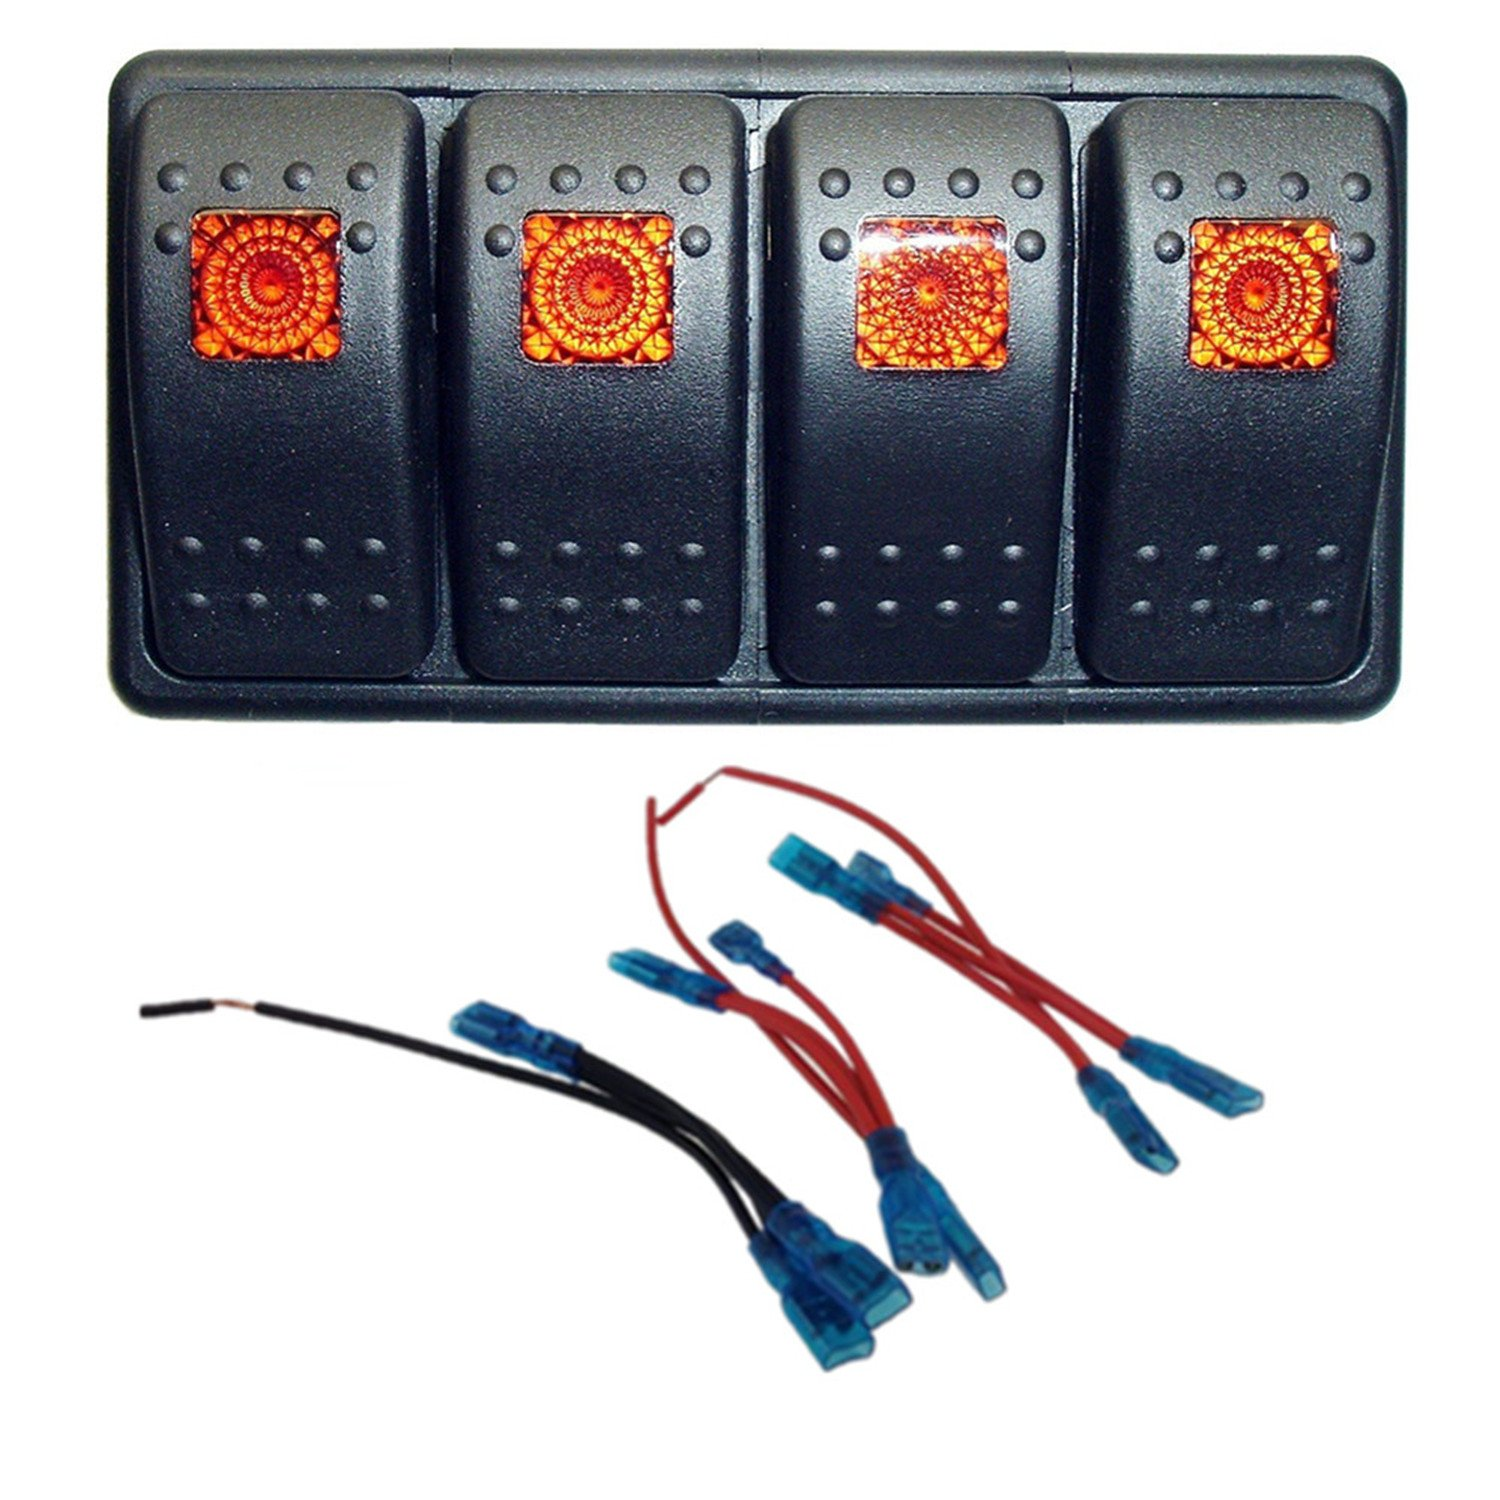 Iztoss 20A 12V 10A 24V ON-OFF 3pins Rocker Switch Panel Auto/Marine Boat RV with Jumper Wire and 4 Switches Housing holder (Multi Color)